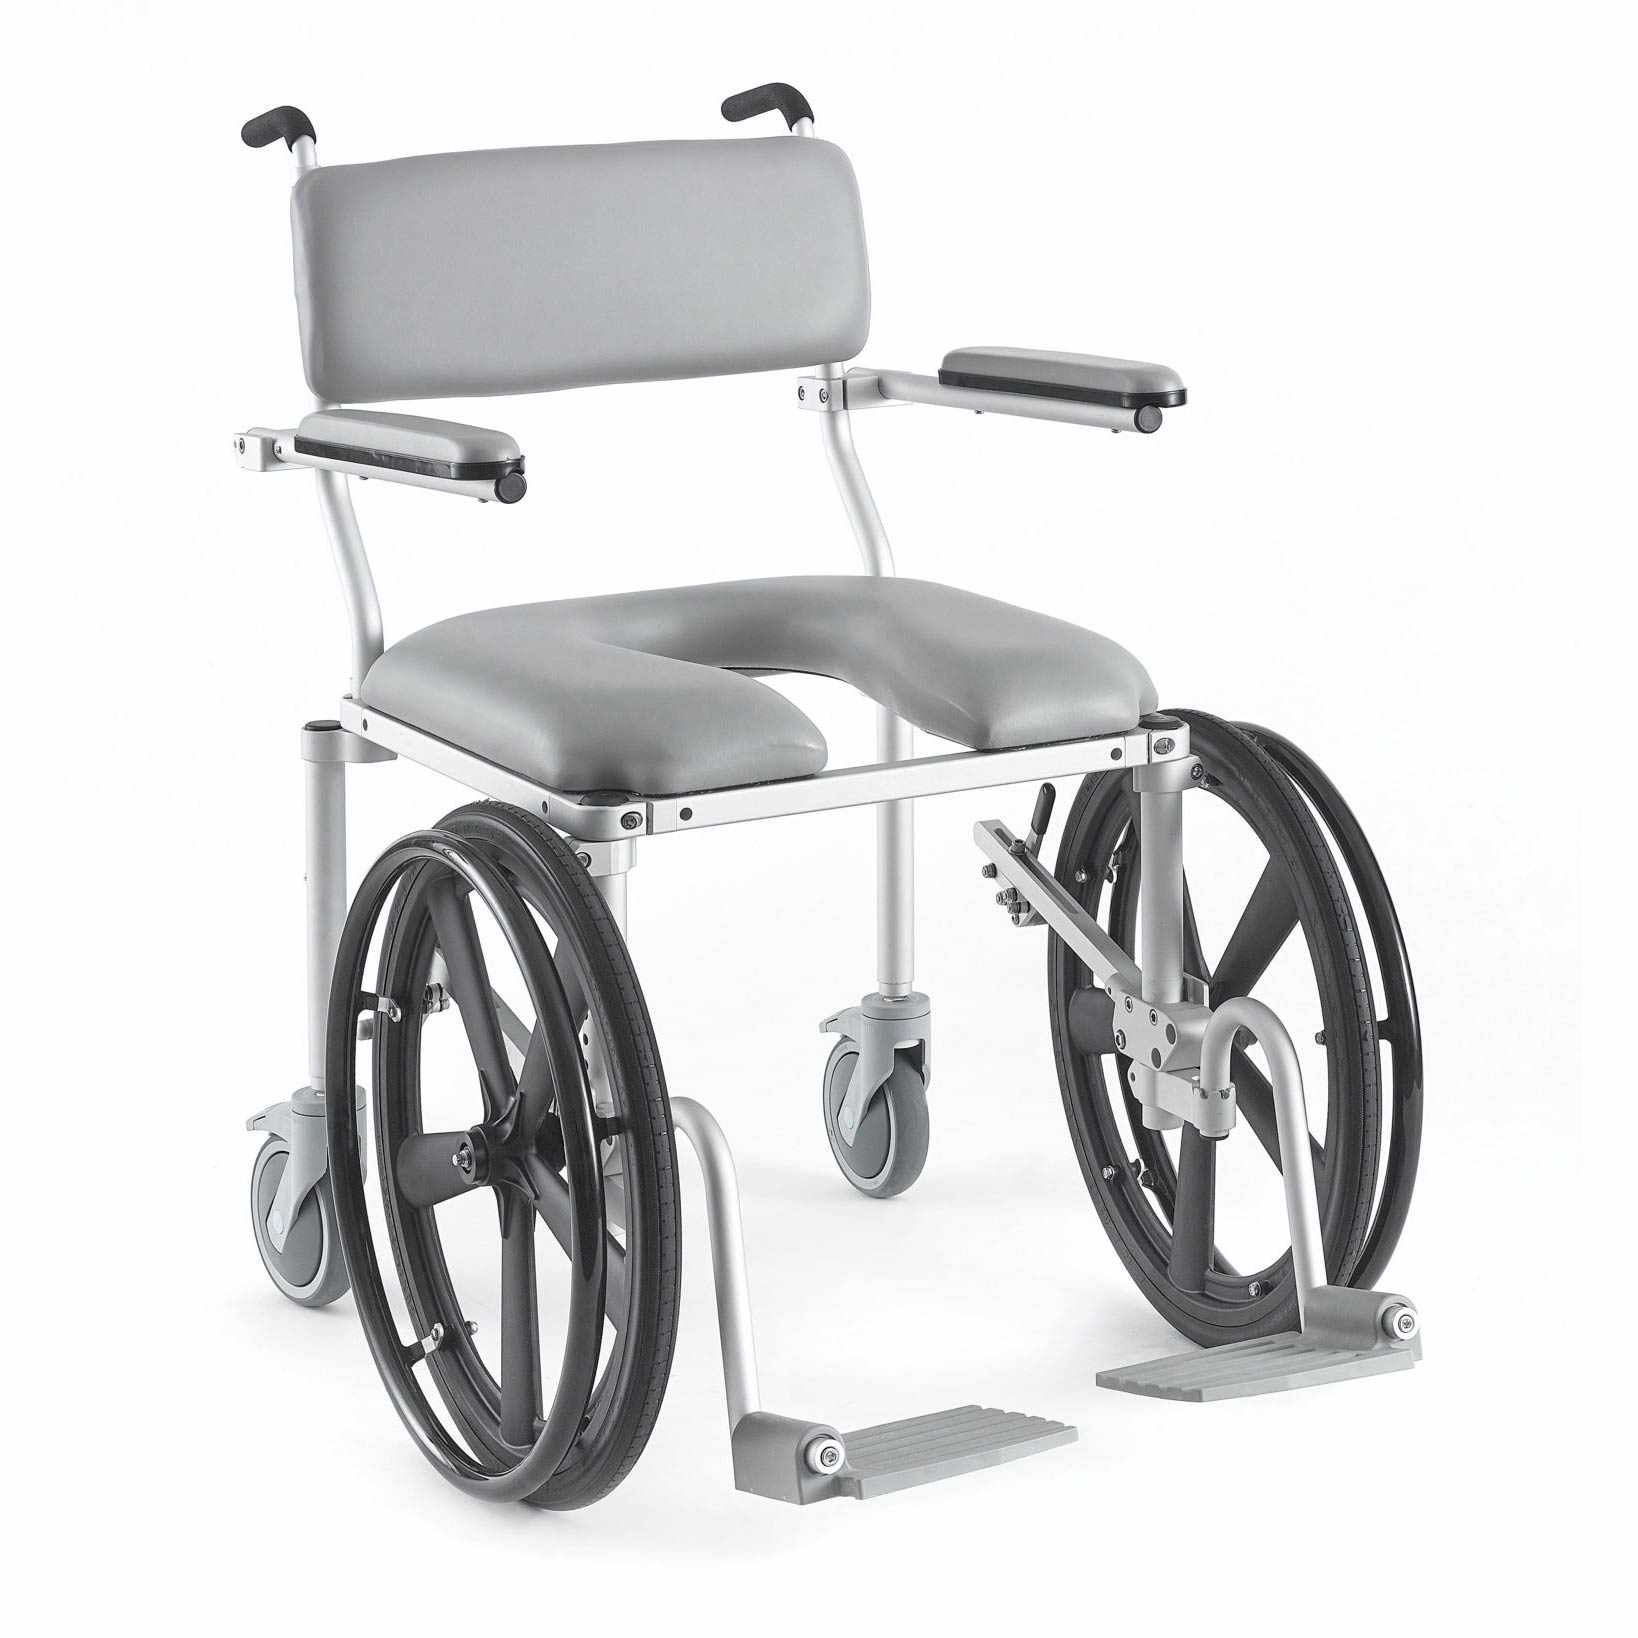 Nuprodx 4220Rx Roll-In Shower Commode Chair | Medicaleshop